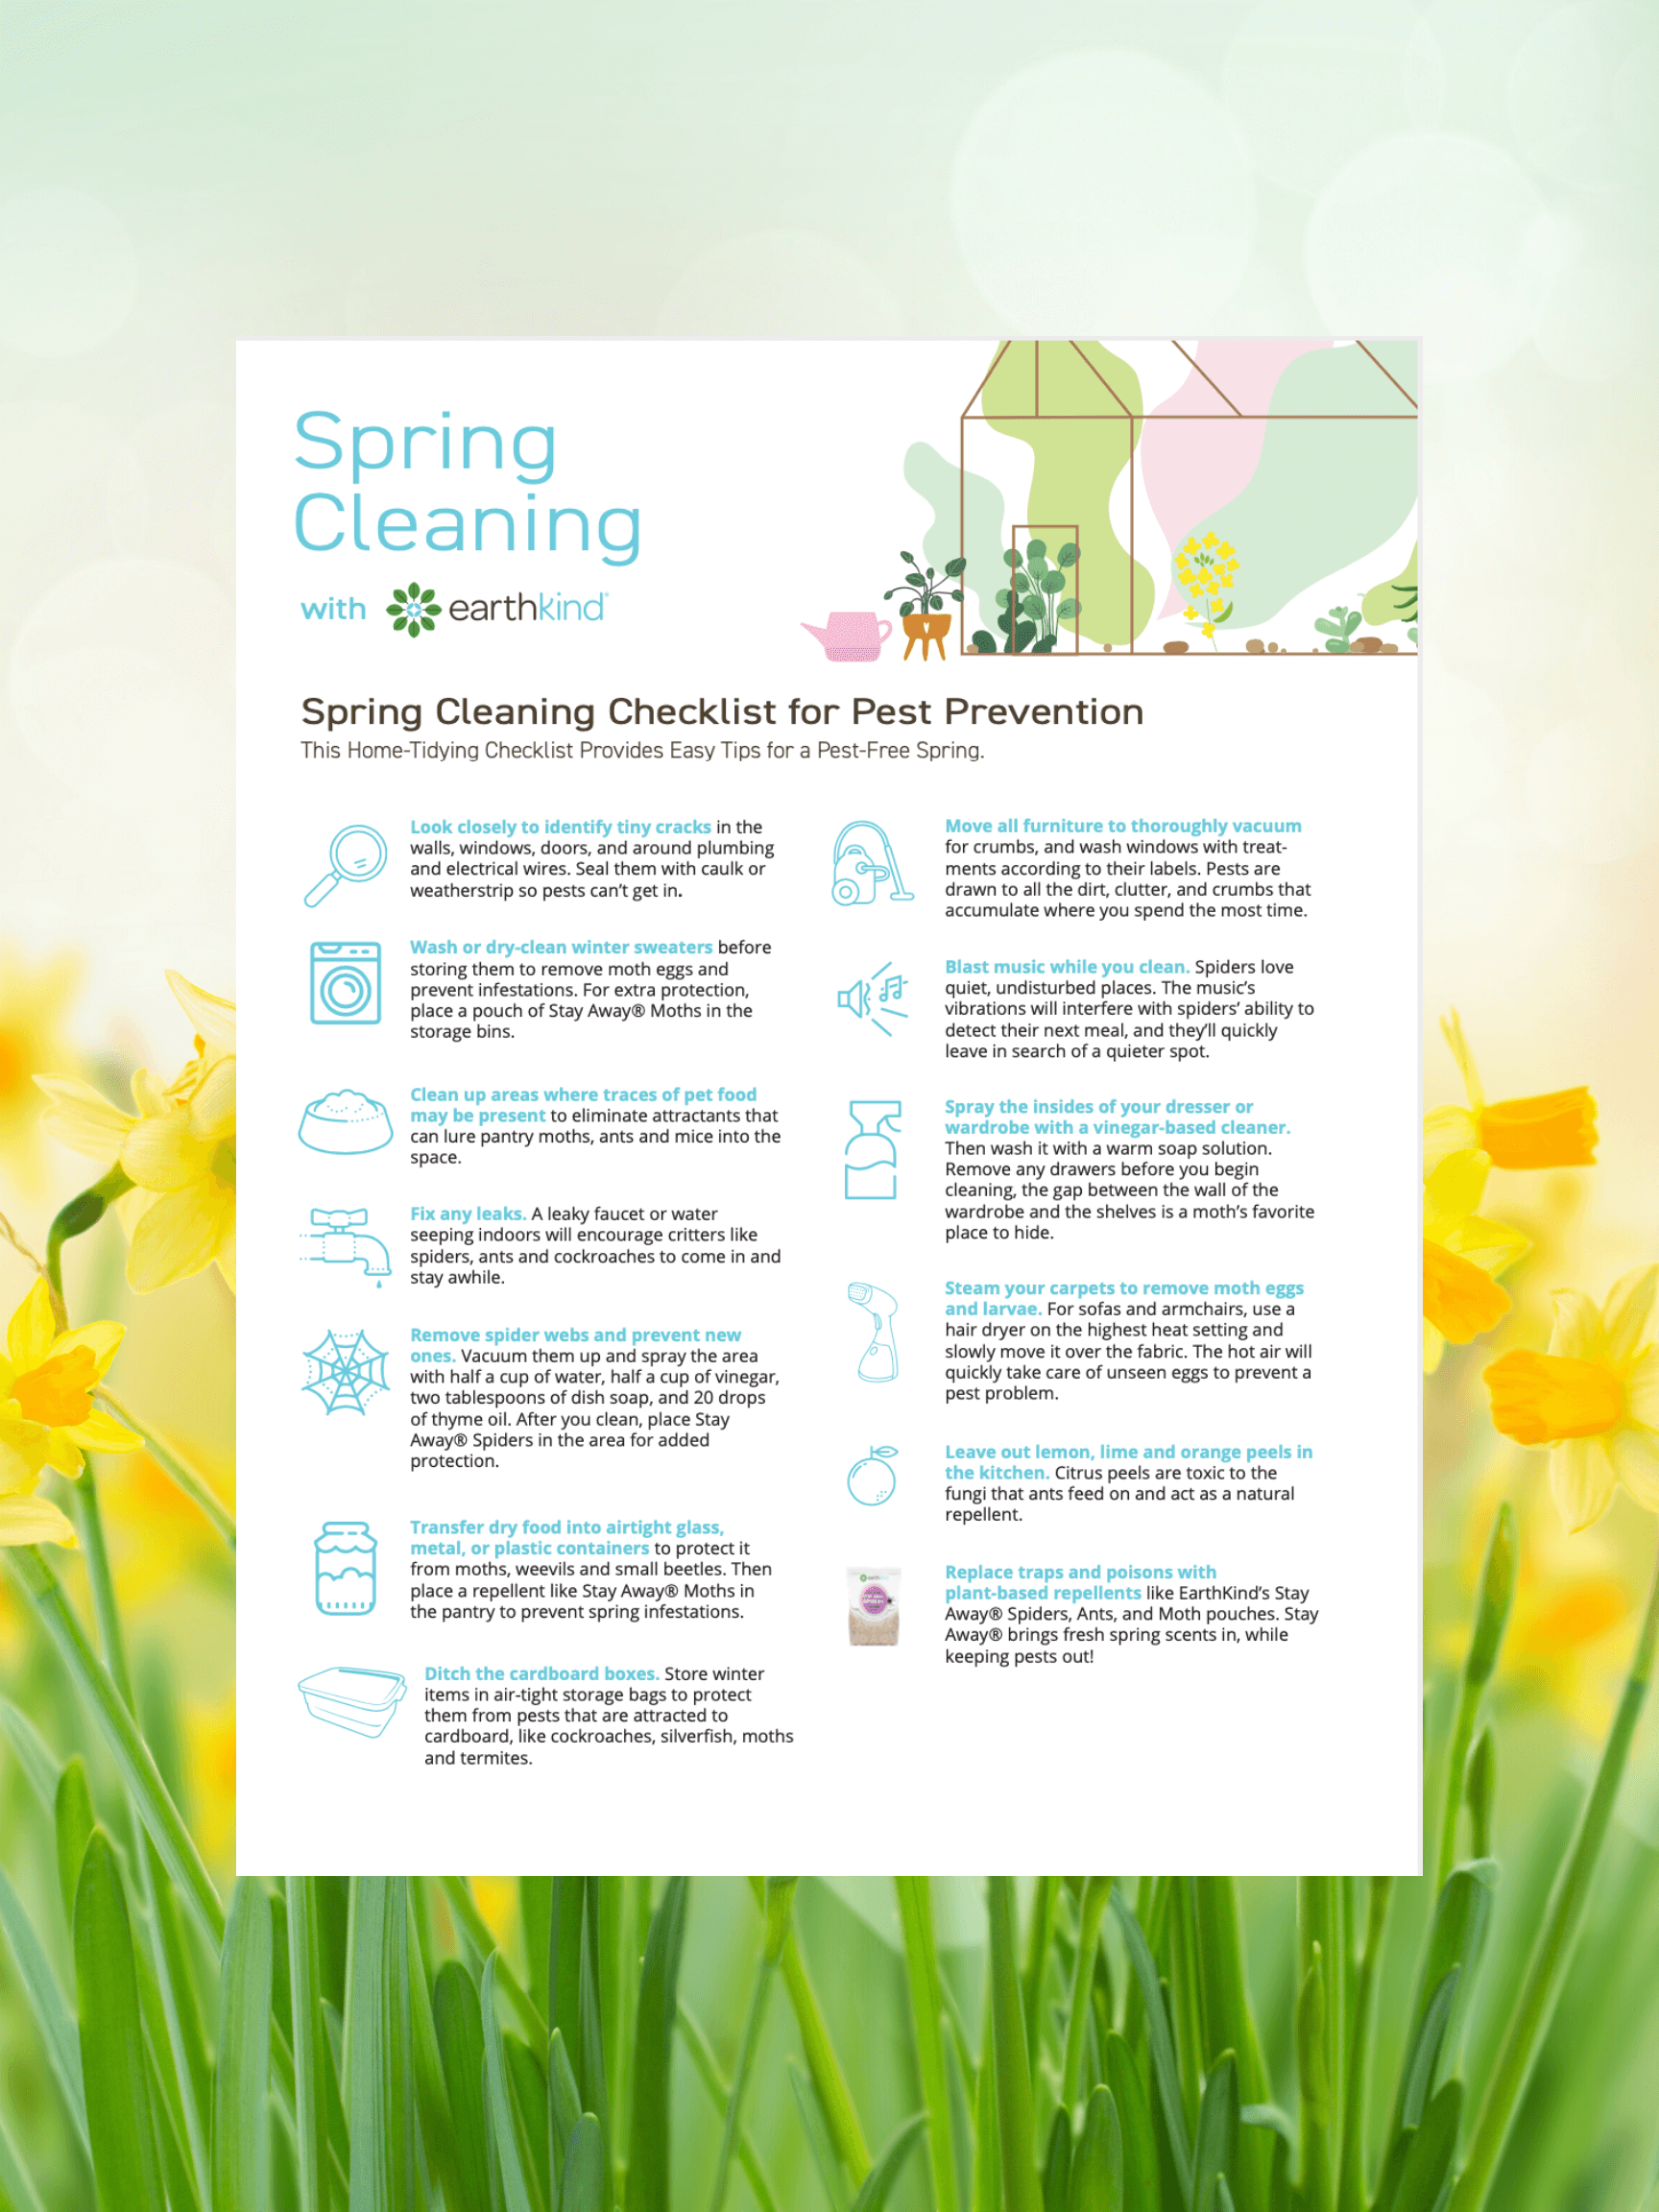 What You Need to Know About Spring Cleaning